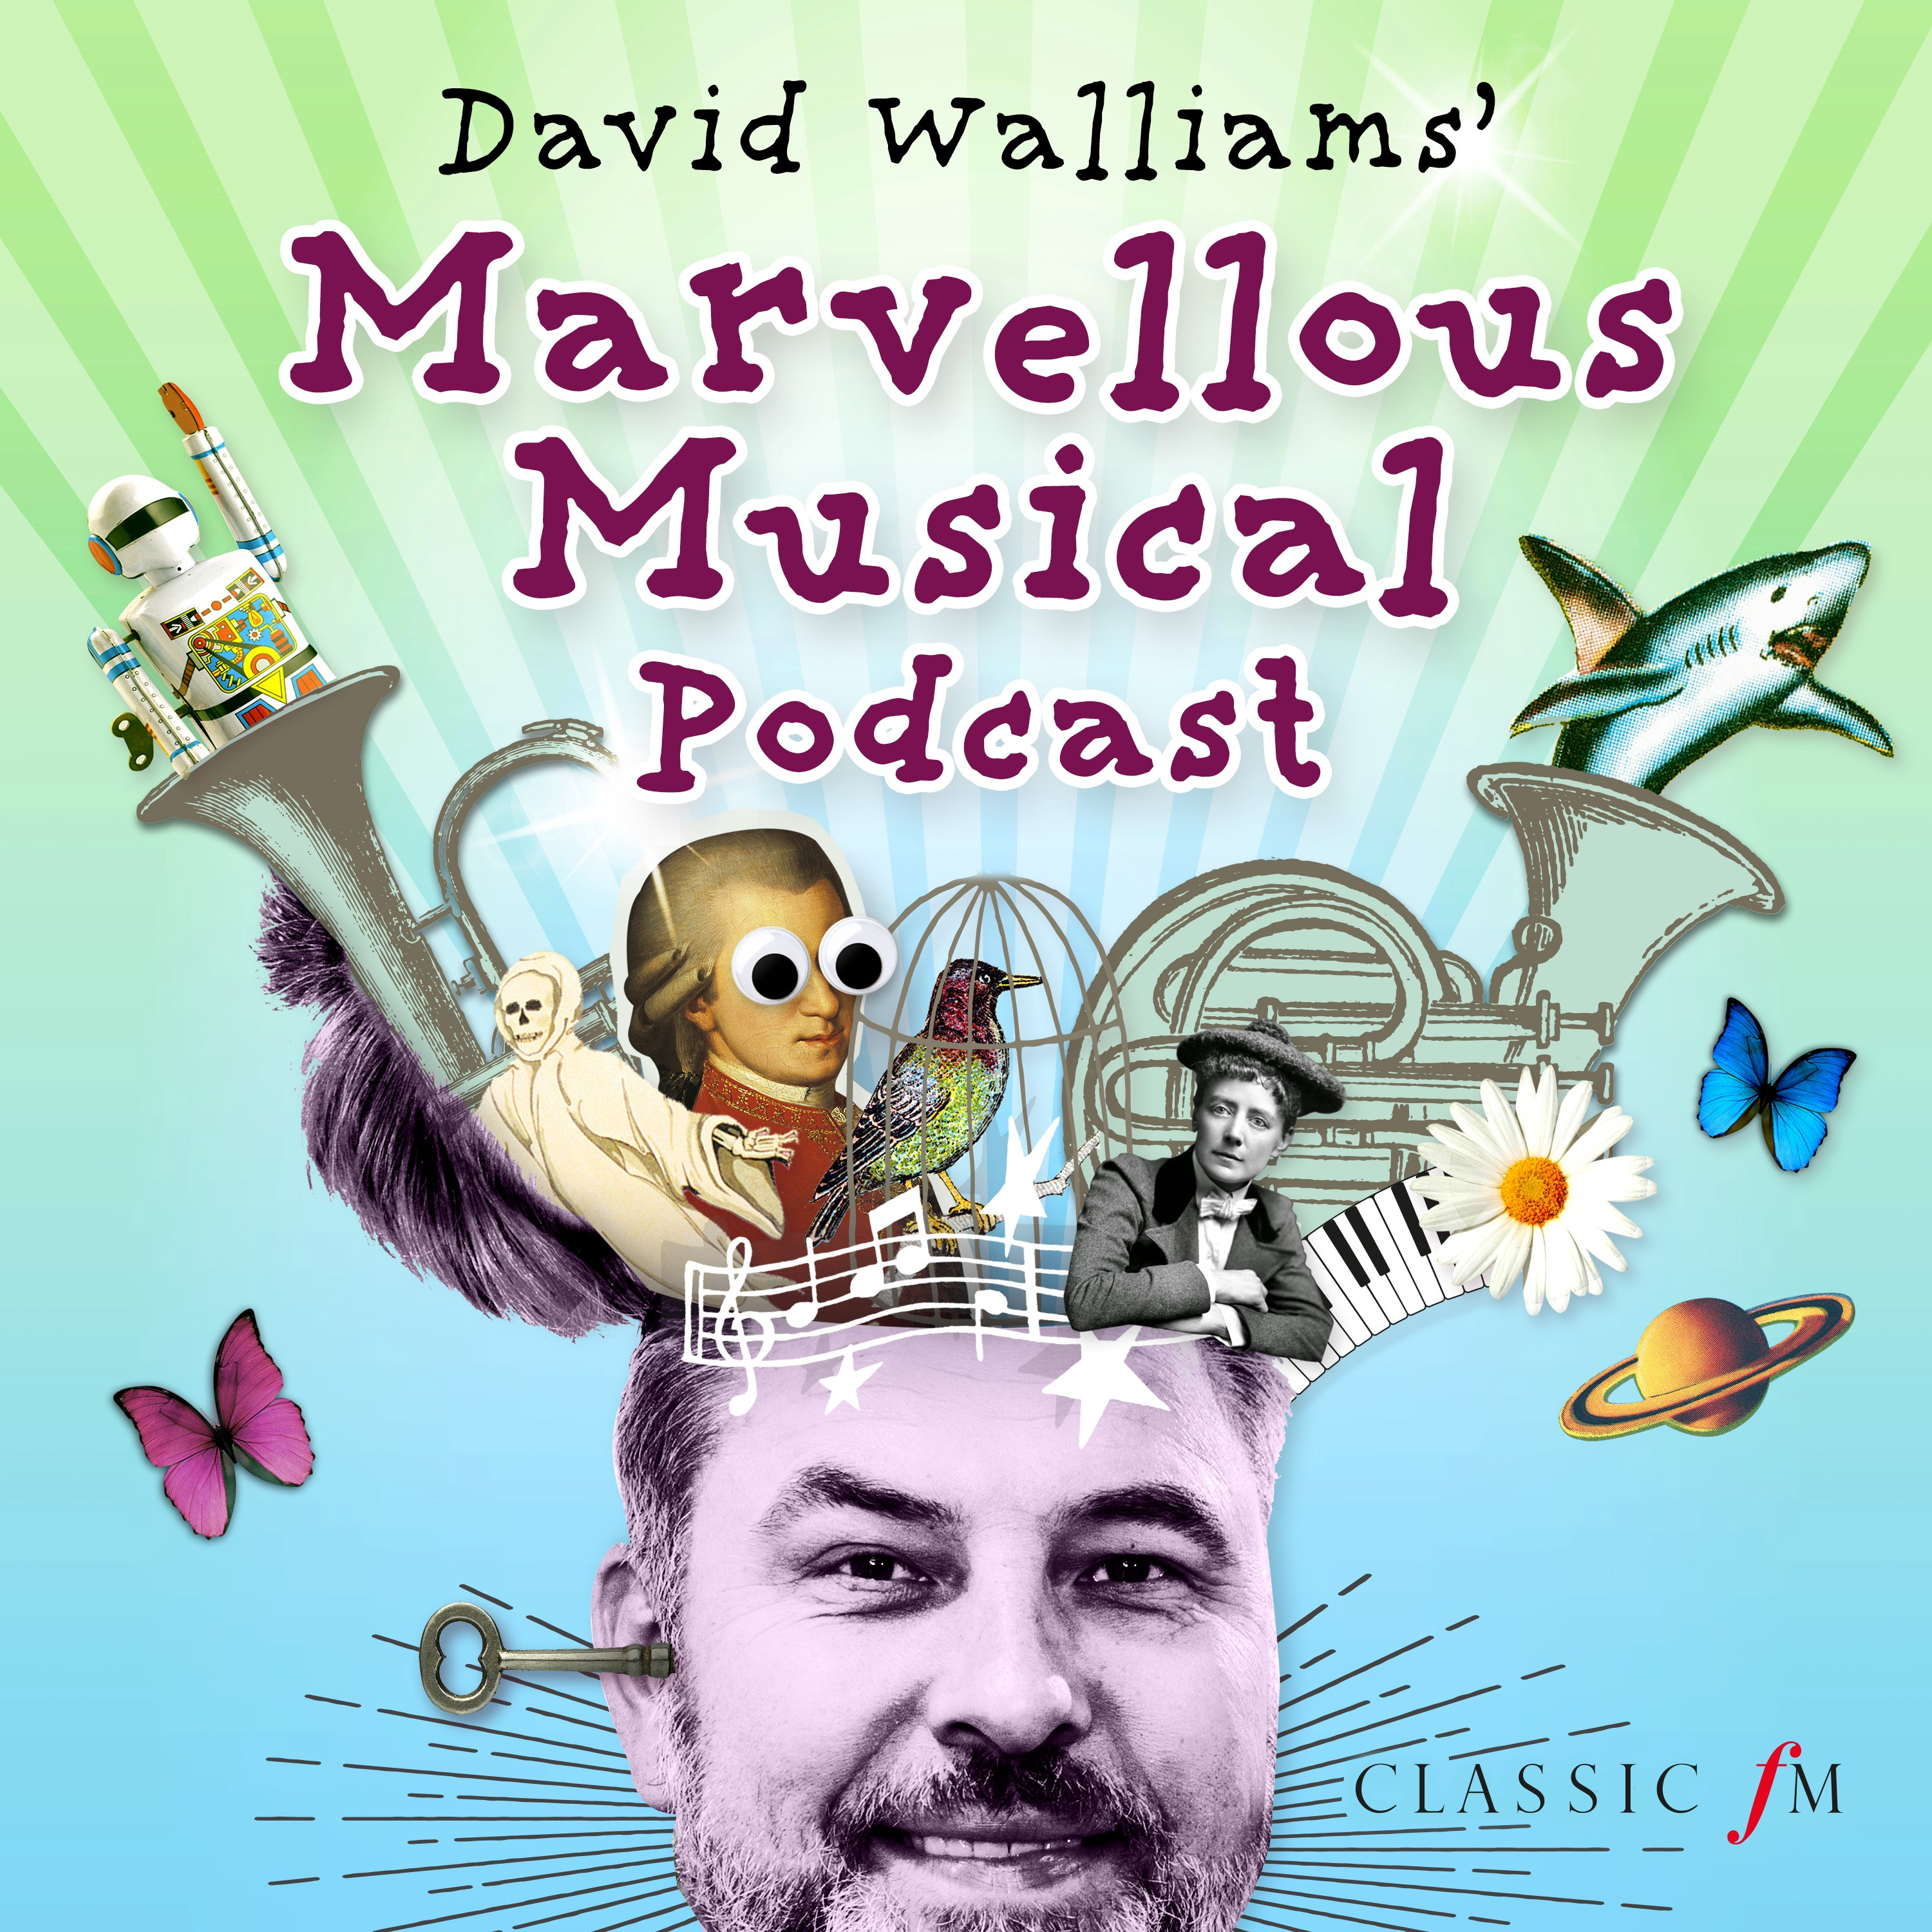 Classic FM and David Walliams team up on classical-music